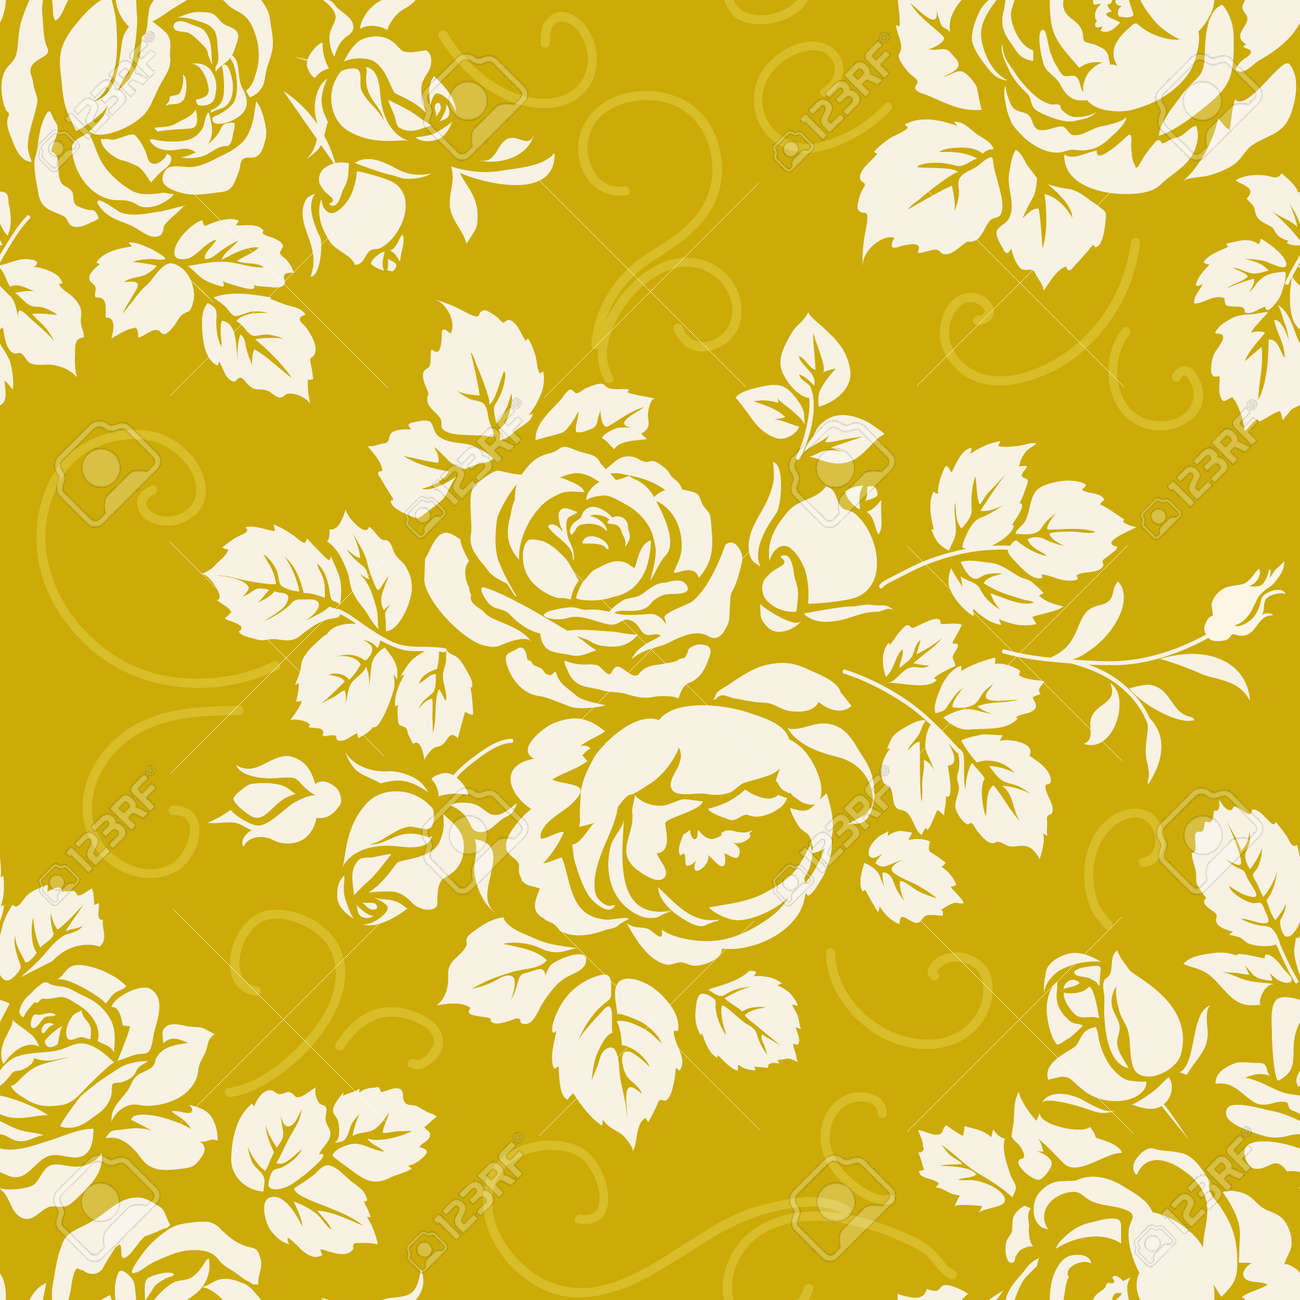 Seamless Pattern With Roses Vintage Background With Blooming Stock Photo Picture And Royalty Free Image Image 68799099